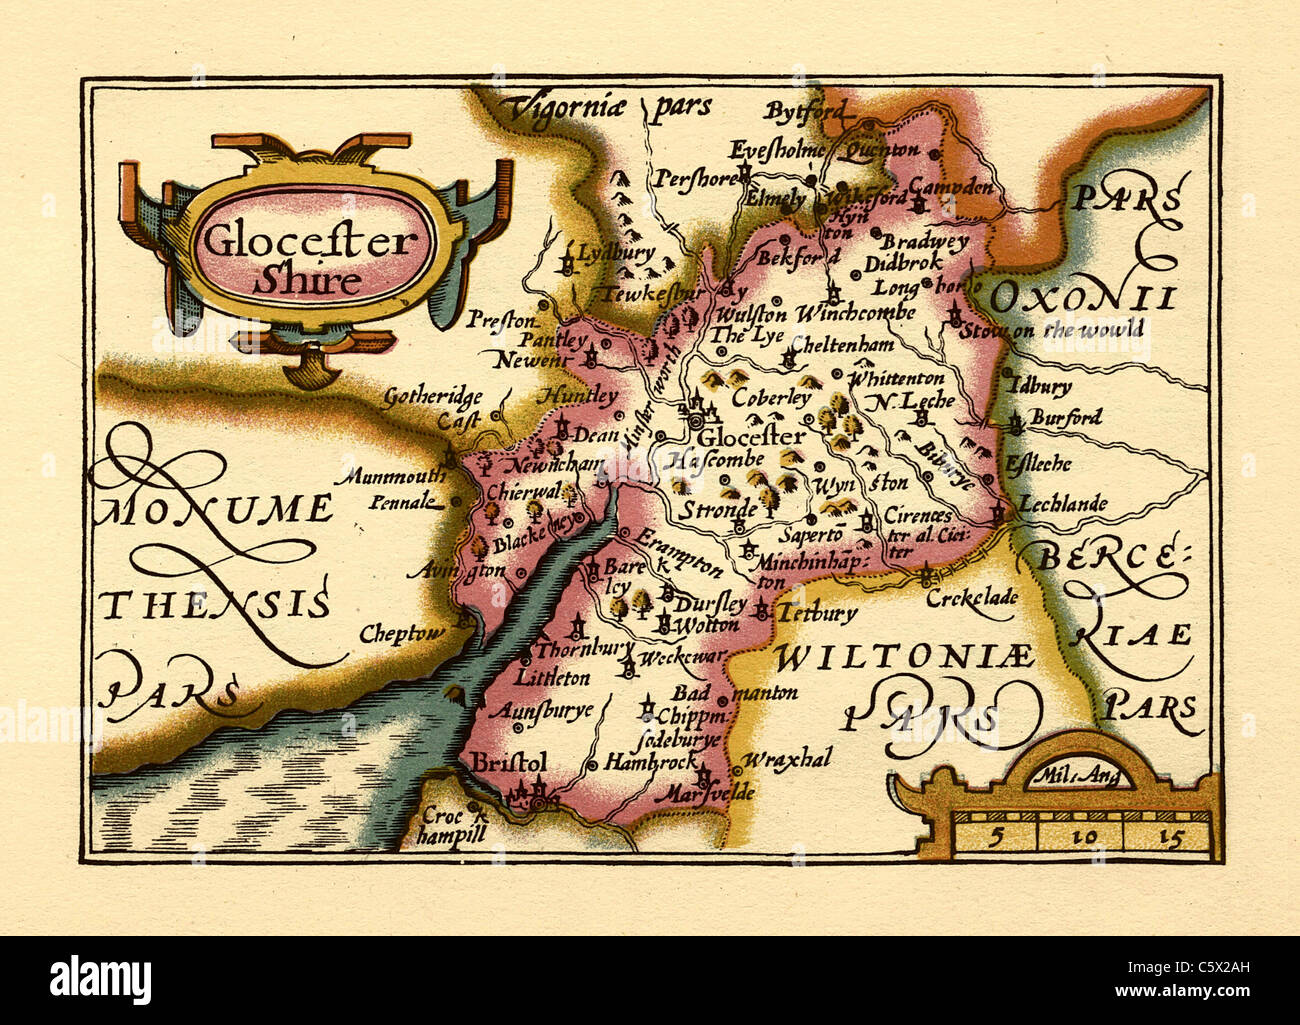 Gloucestershire (Glocestershire) - Old English County Map by John Speed, circa 1625 - Stock Image